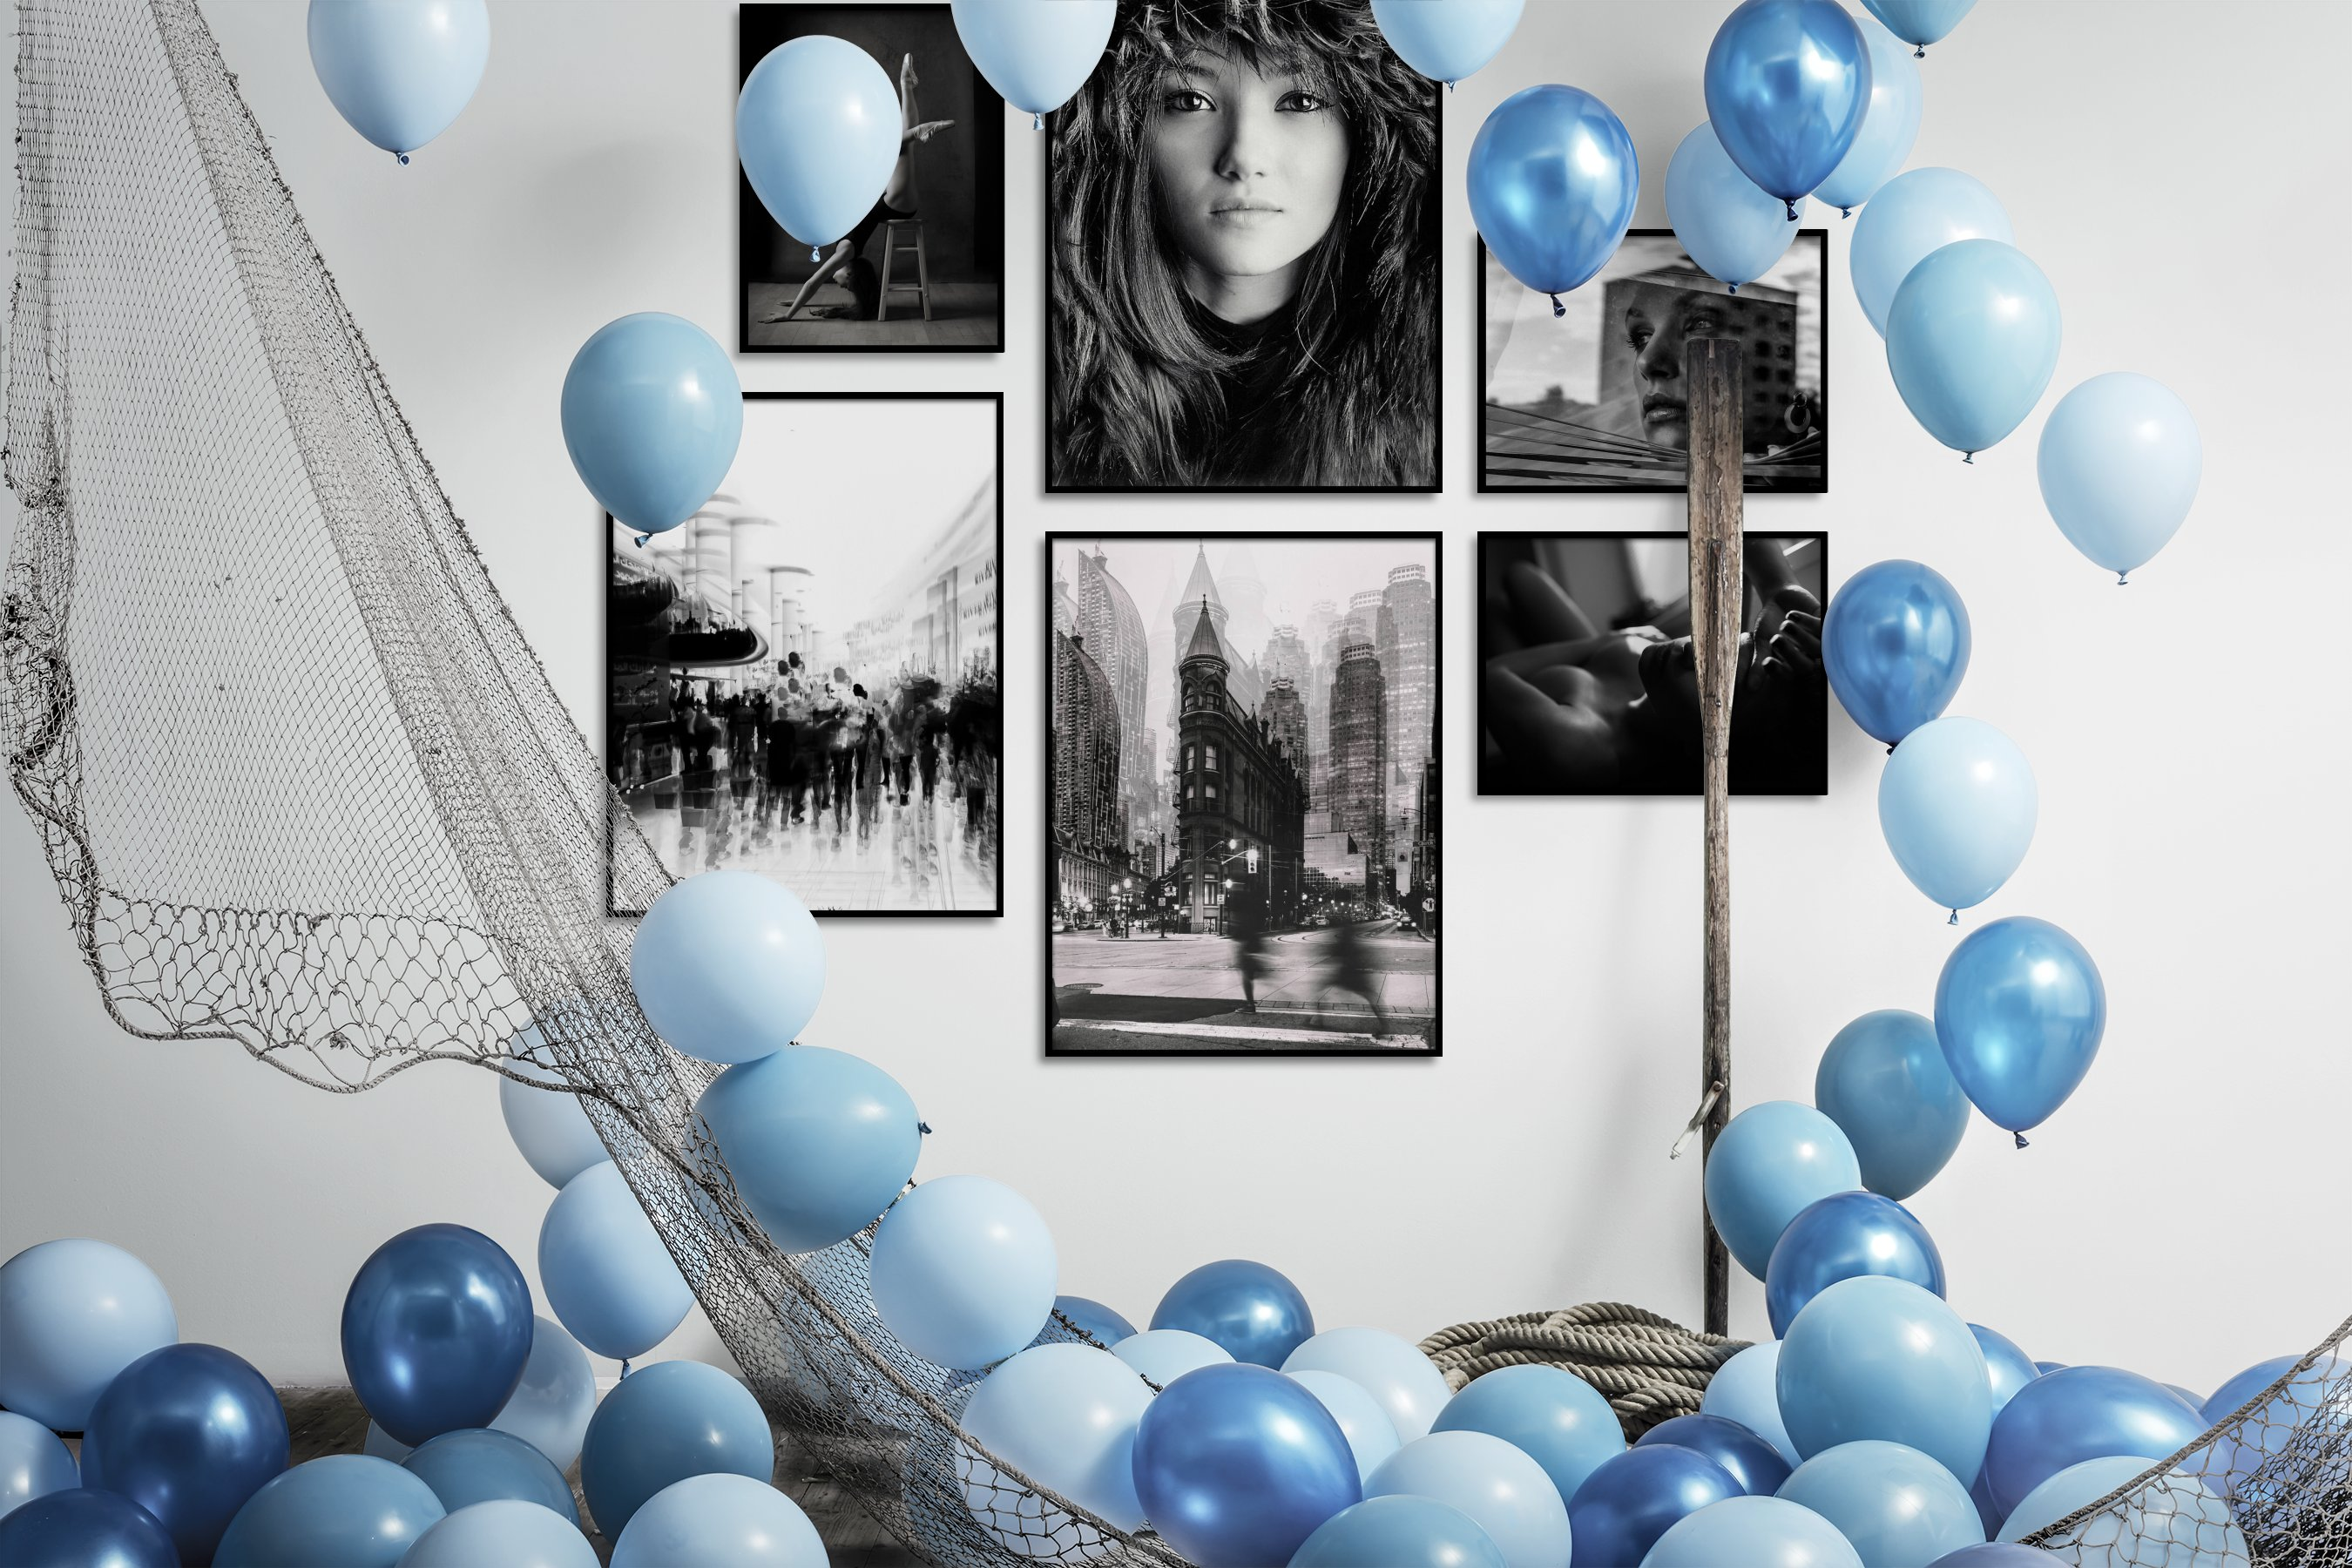 Gallery wall idea with six framed pictures arranged on a wall depicting Fashion & Beauty, Black & White, For the Moderate, City Life, and For the Maximalist